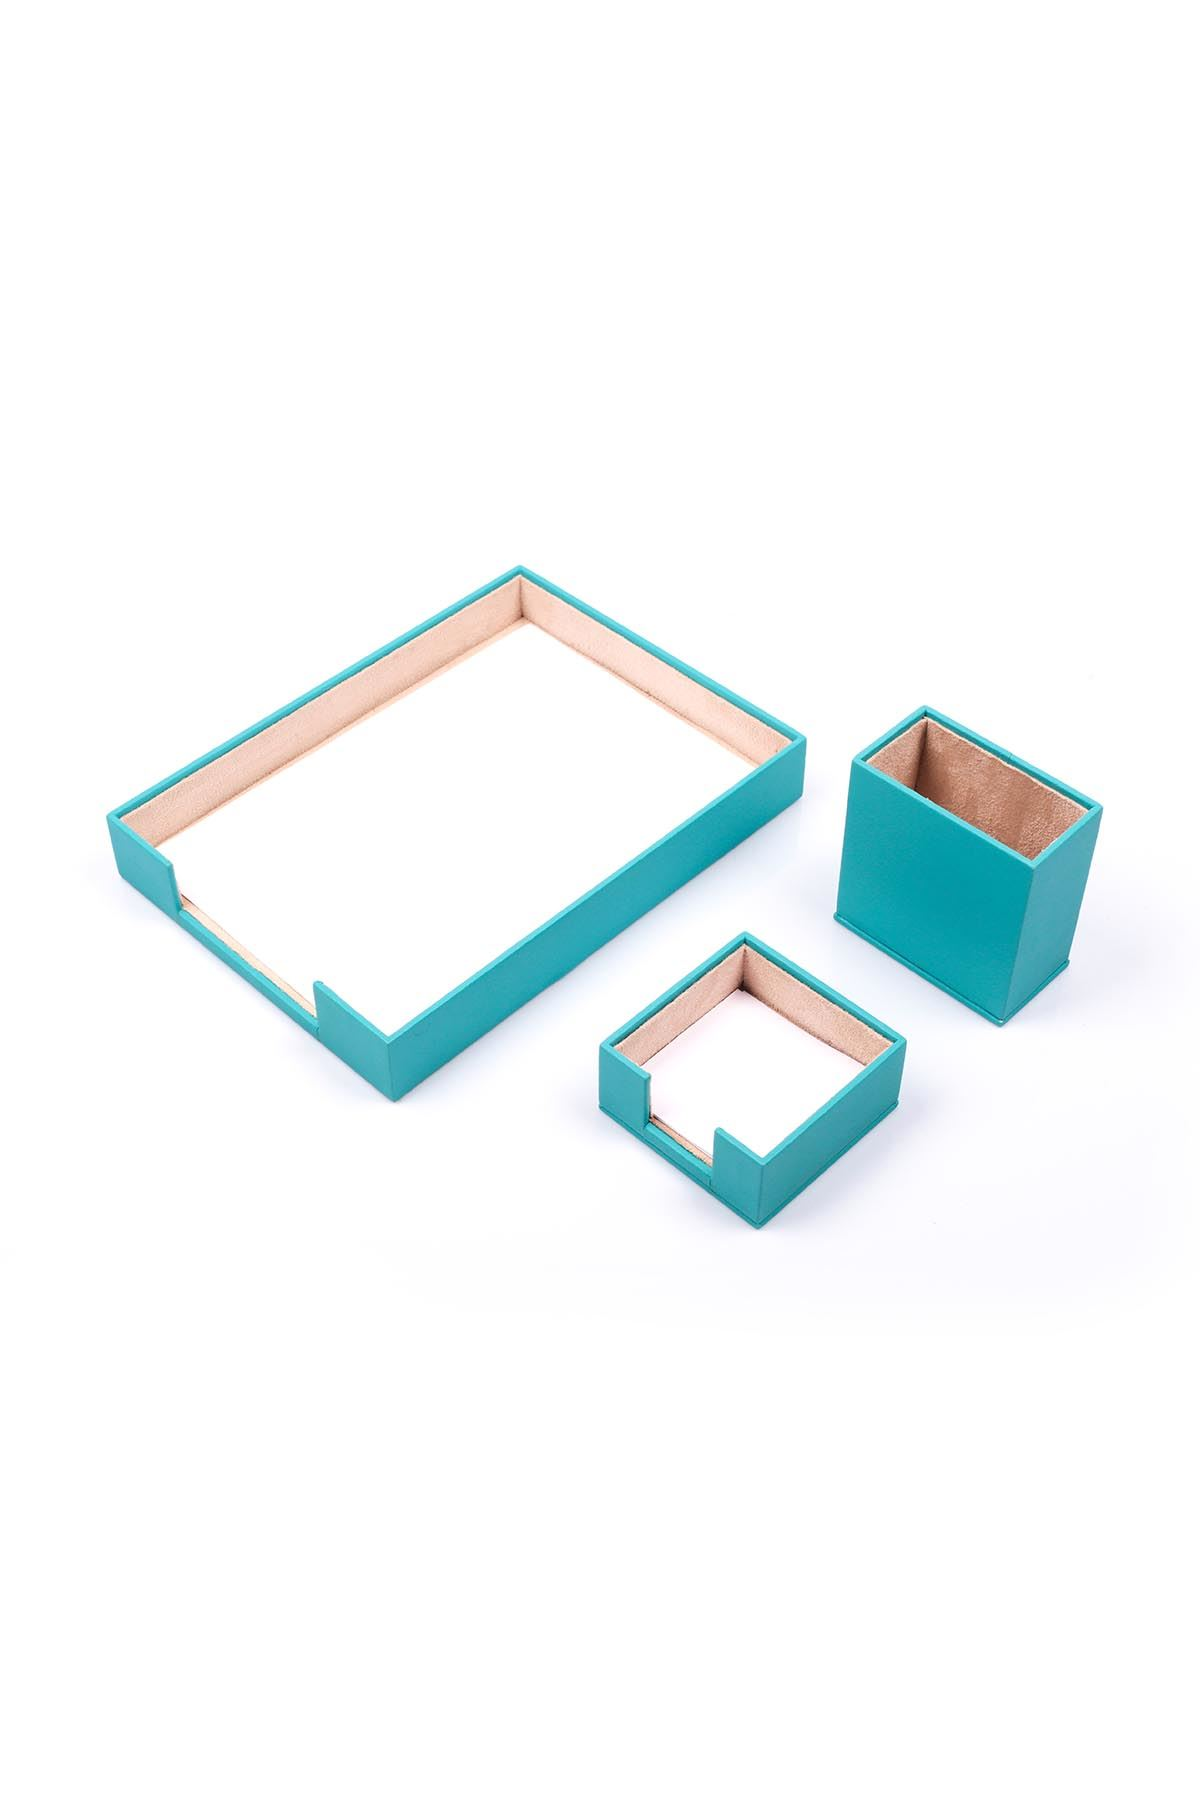 Document Tray With 2 Accessories Turquise| Desk Set Accessories | Desktop Accessories | Desk Accessories | Desk Organizers